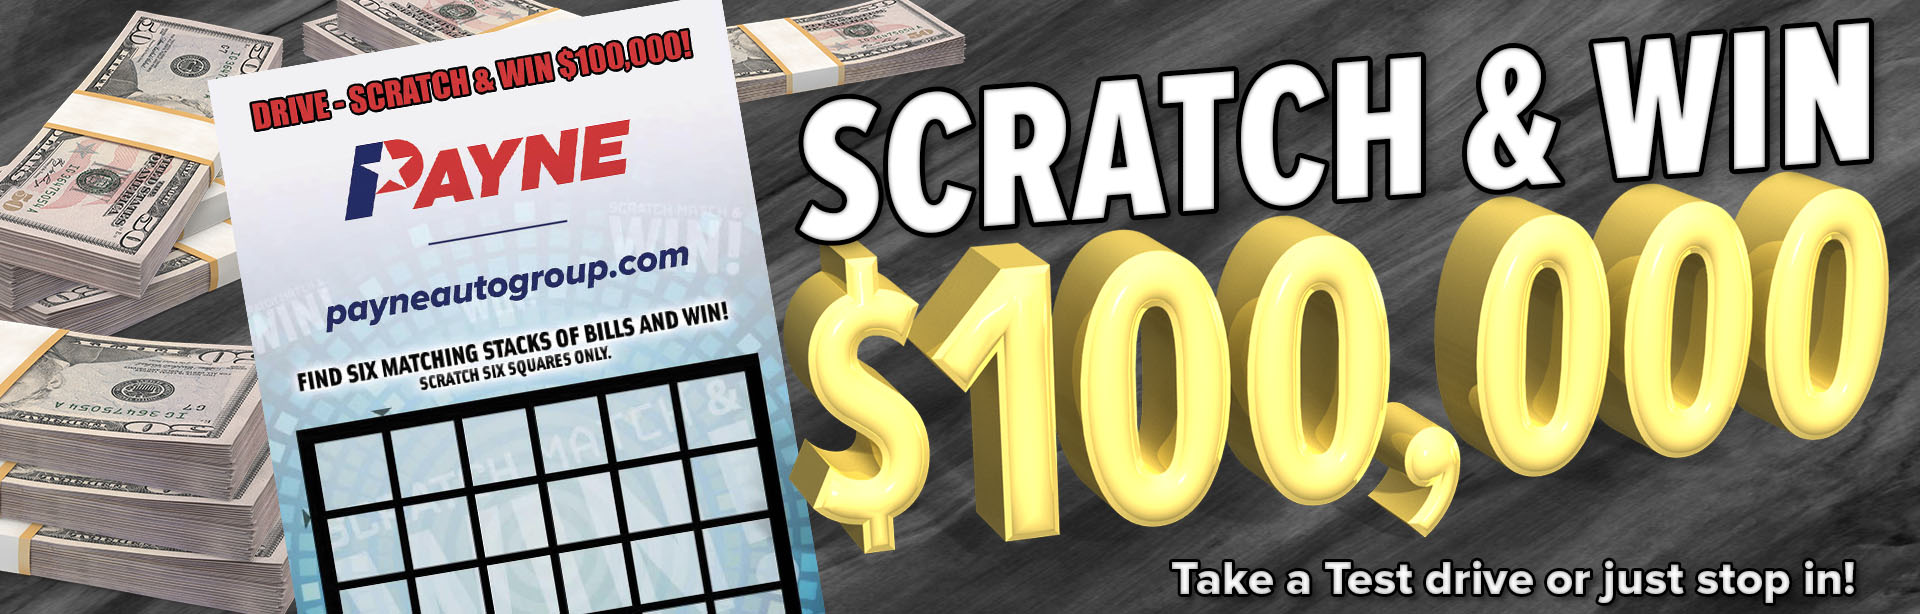 Drive, Scratch, and Win $100,000